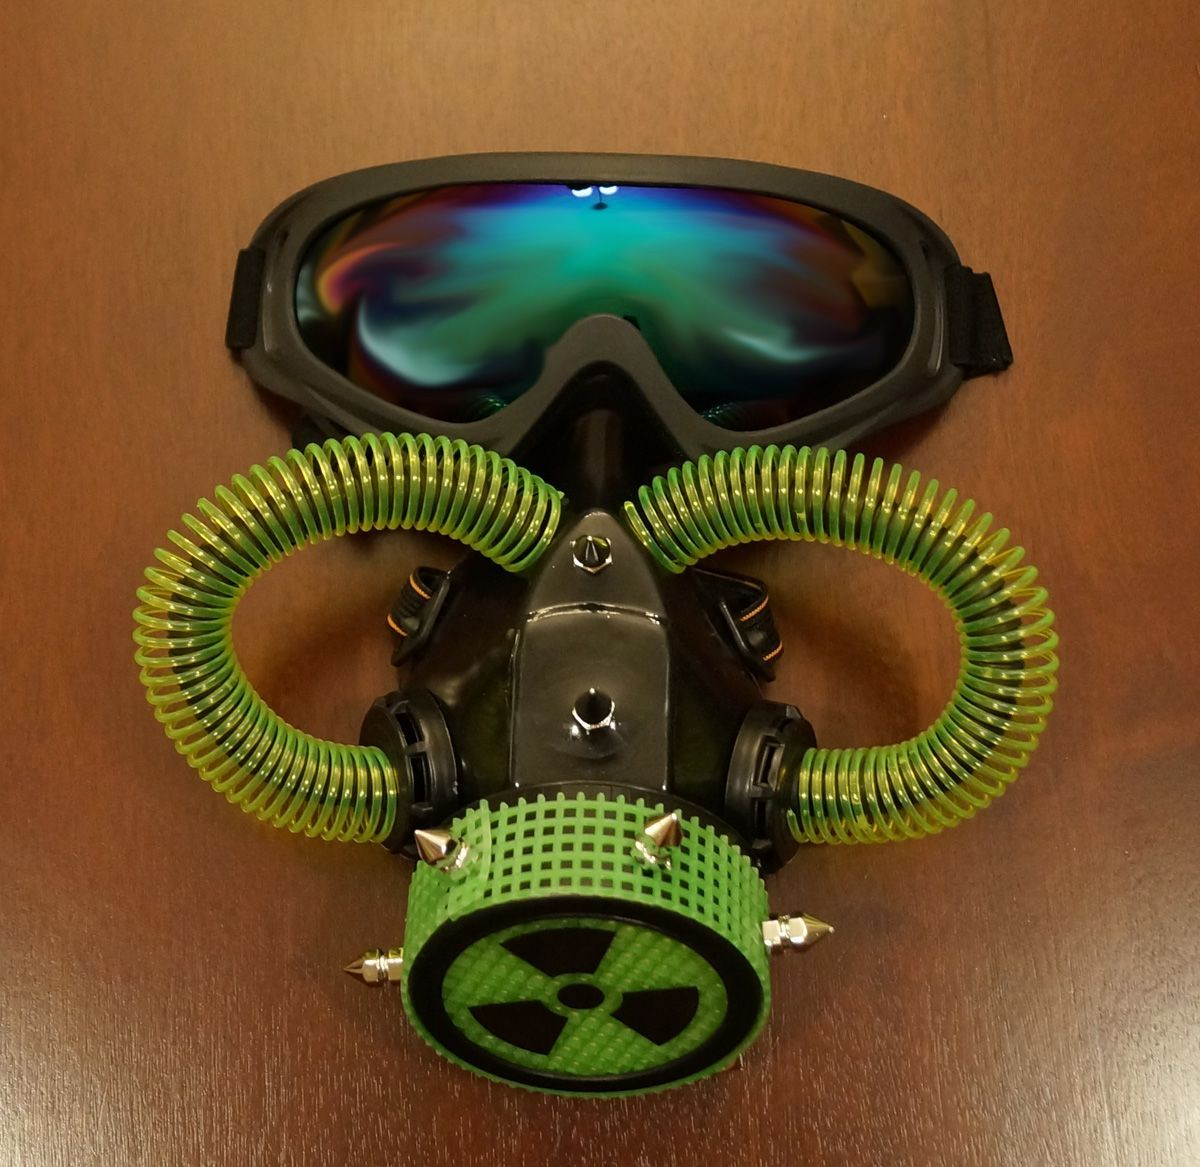 Bio Hazard Aviator Gas Mask & Goggles Costume Accessory